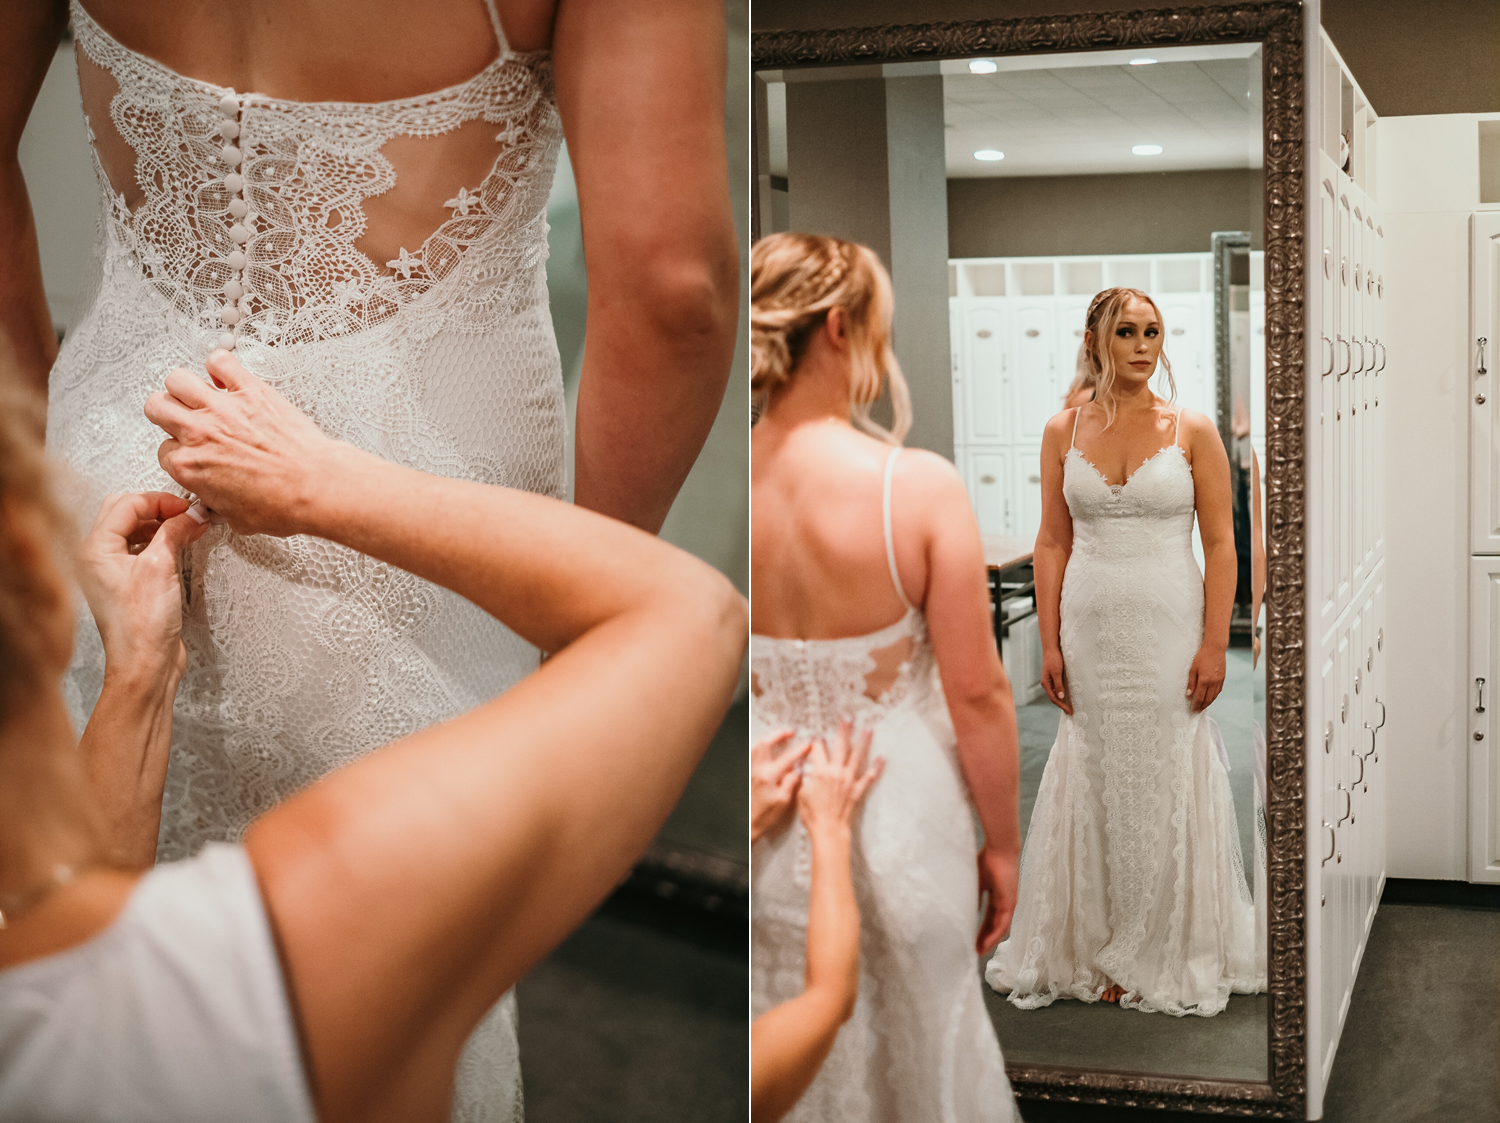 mom buttoning up the brides wedding dress facing a mirror